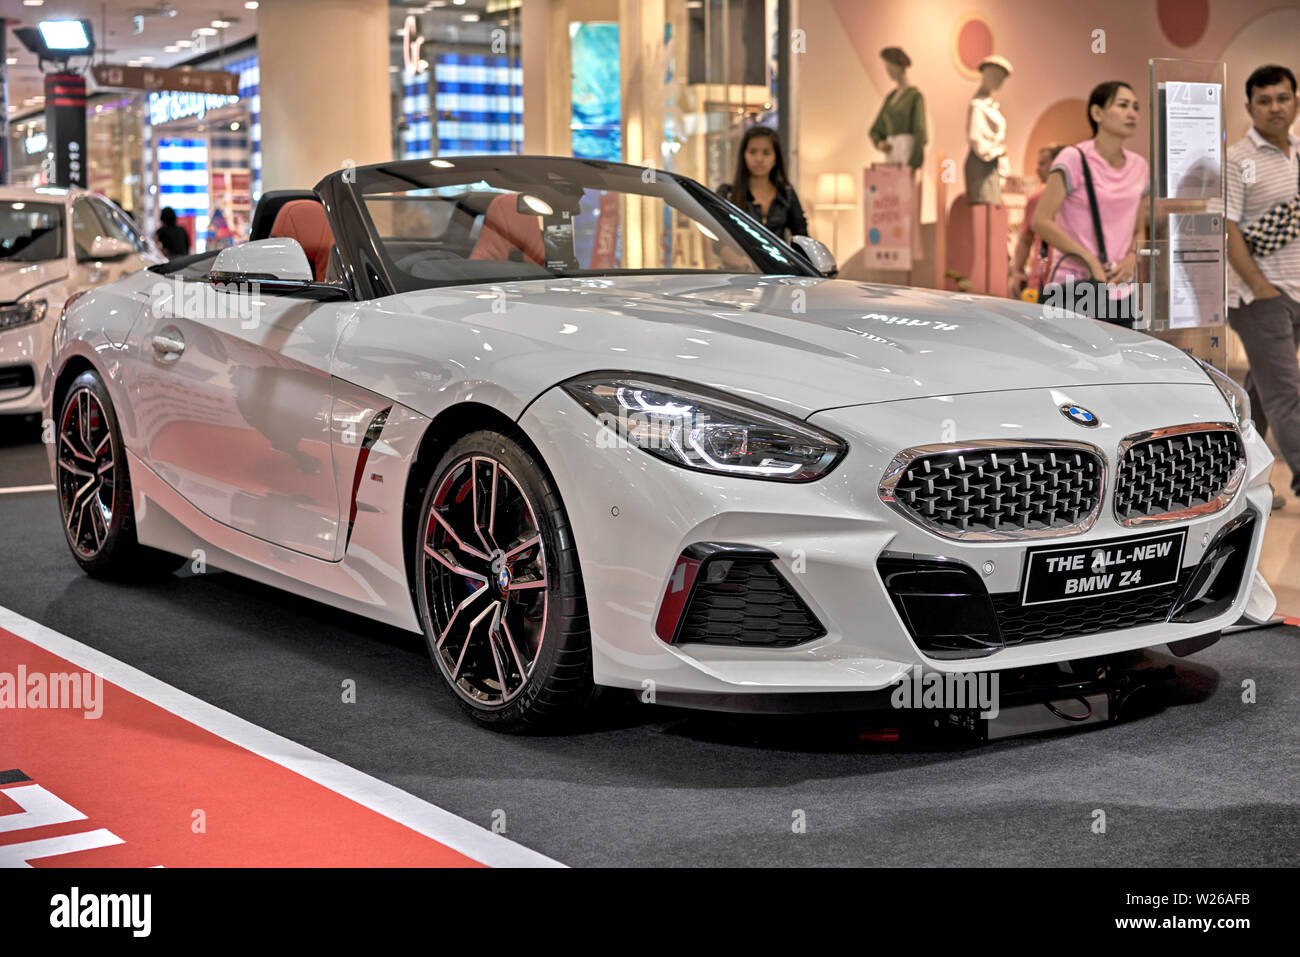 2019 Bmw Z4 Stock Photos 2019 Bmw Z4 Stock Images Alamy